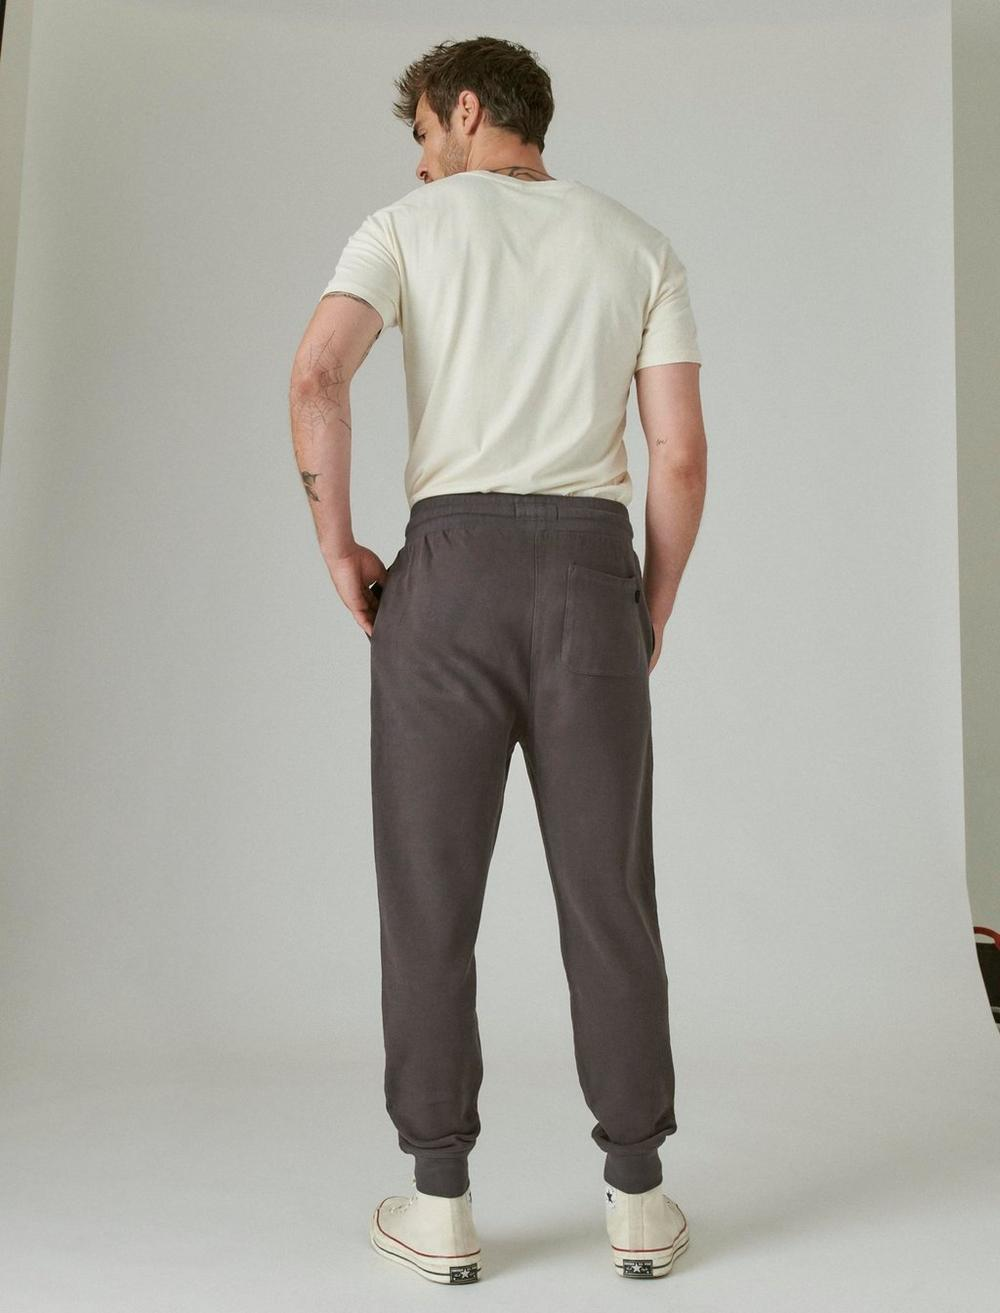 SUEDED FRENCH TERRY JOGGER PANT, image 3